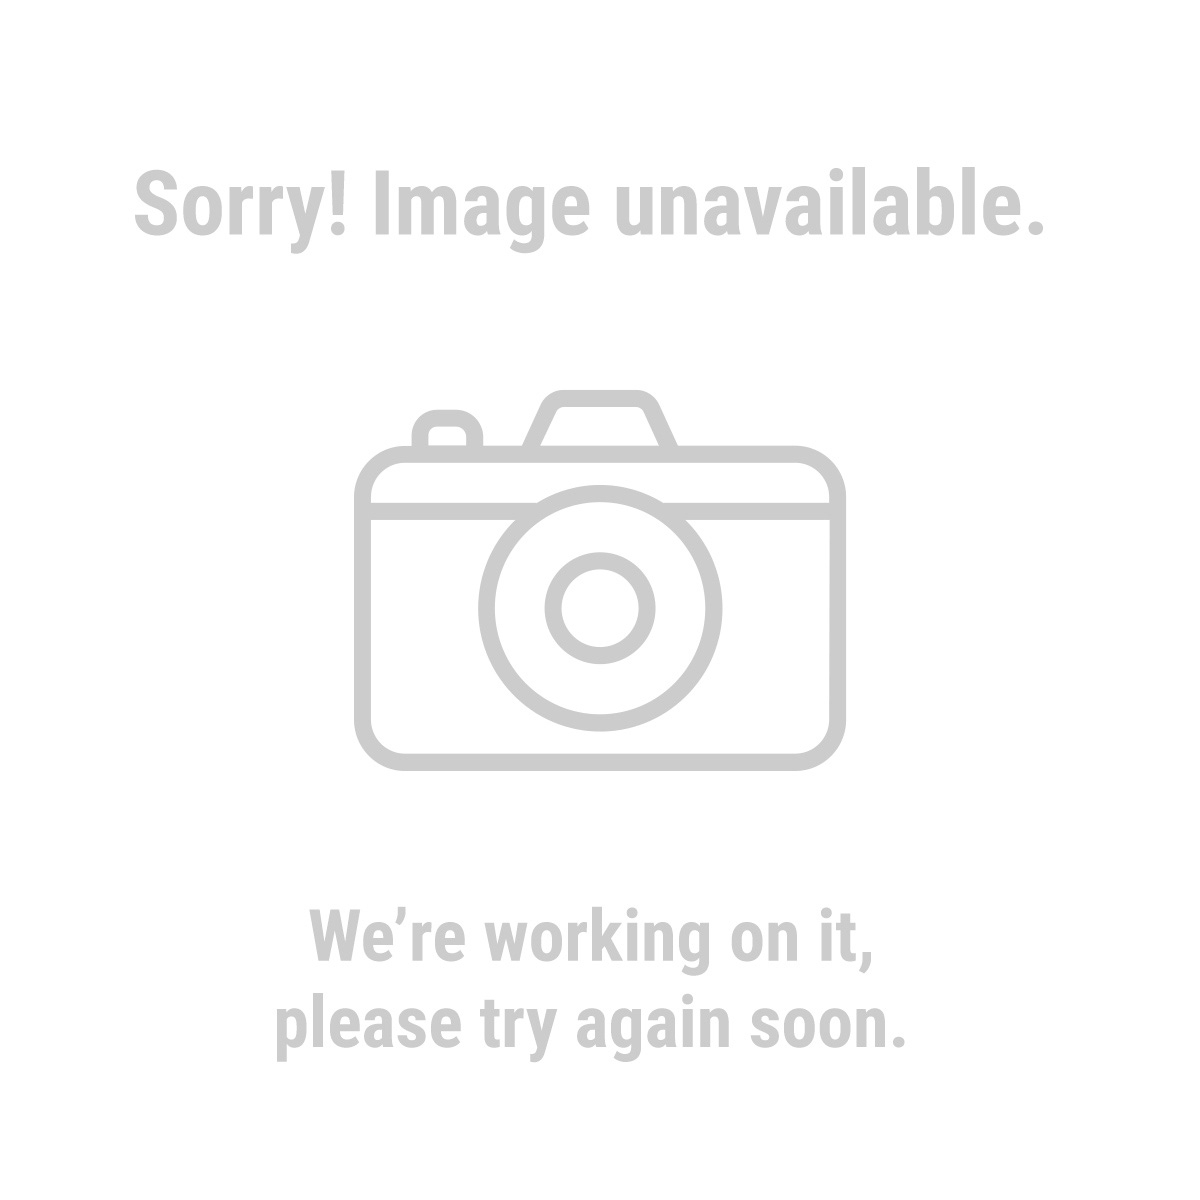 Warrior 61892 7 in. Continuous Rim Wet Cut Masonry Diamond Blade